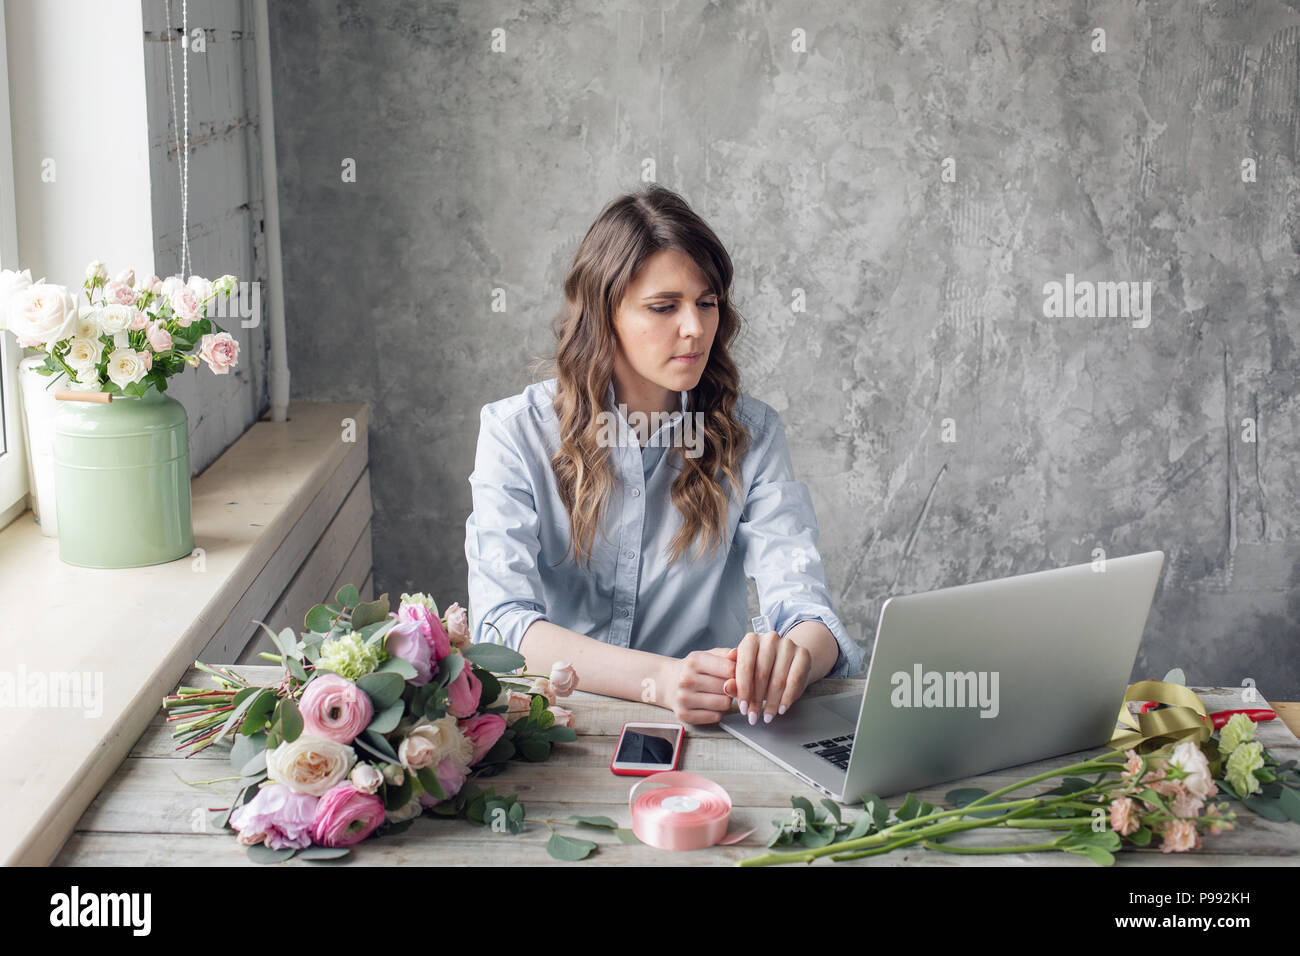 The concept of order-taking and delivery. working table in flower shop. Girl assistant or owner in floral design studio, making decorations and arrangements. - Stock Image